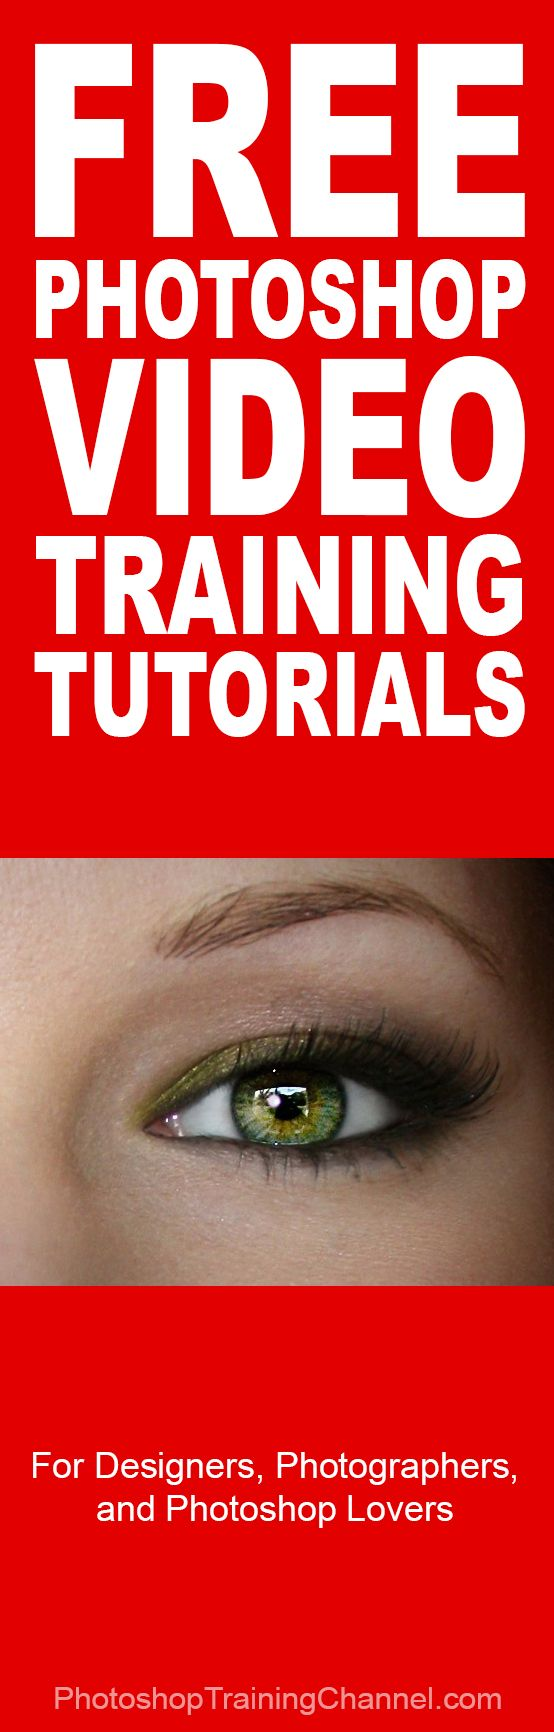 The best Free Photoshop video training tutorials - www.photoshoptrainingchannel.com